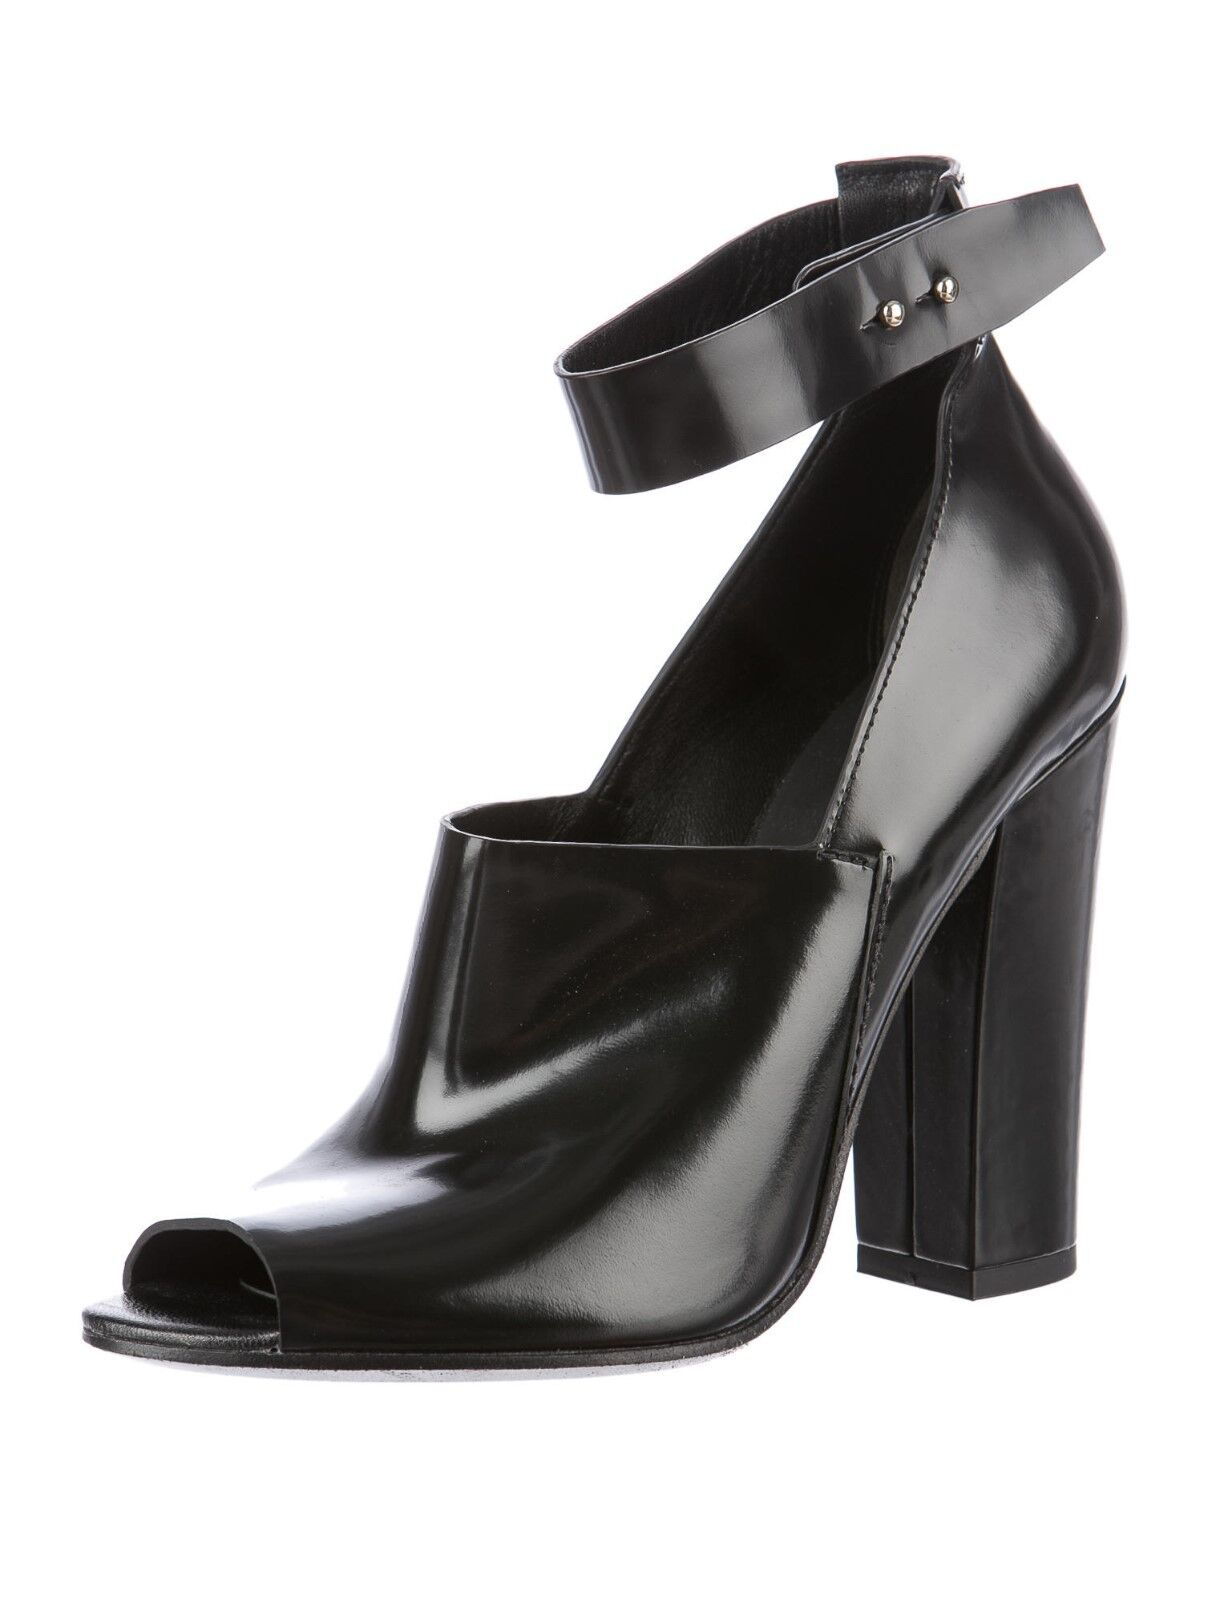 SOLD OUT NEW BLACK LEATHER ALEXANDER WANG HEELS WITH ANKLE STRAP